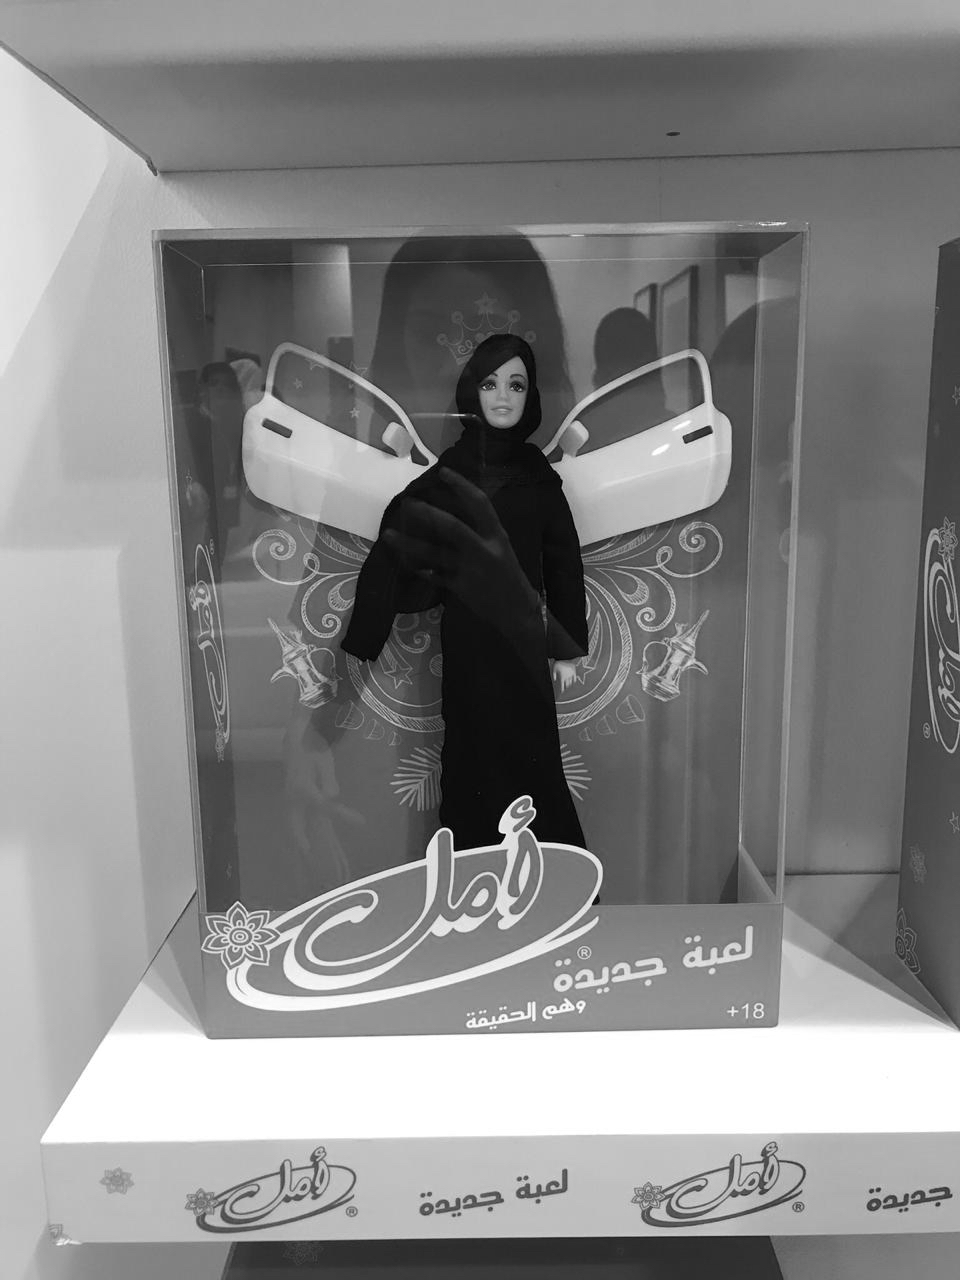 Saudi Barbie May Website Image_b&w.jpg